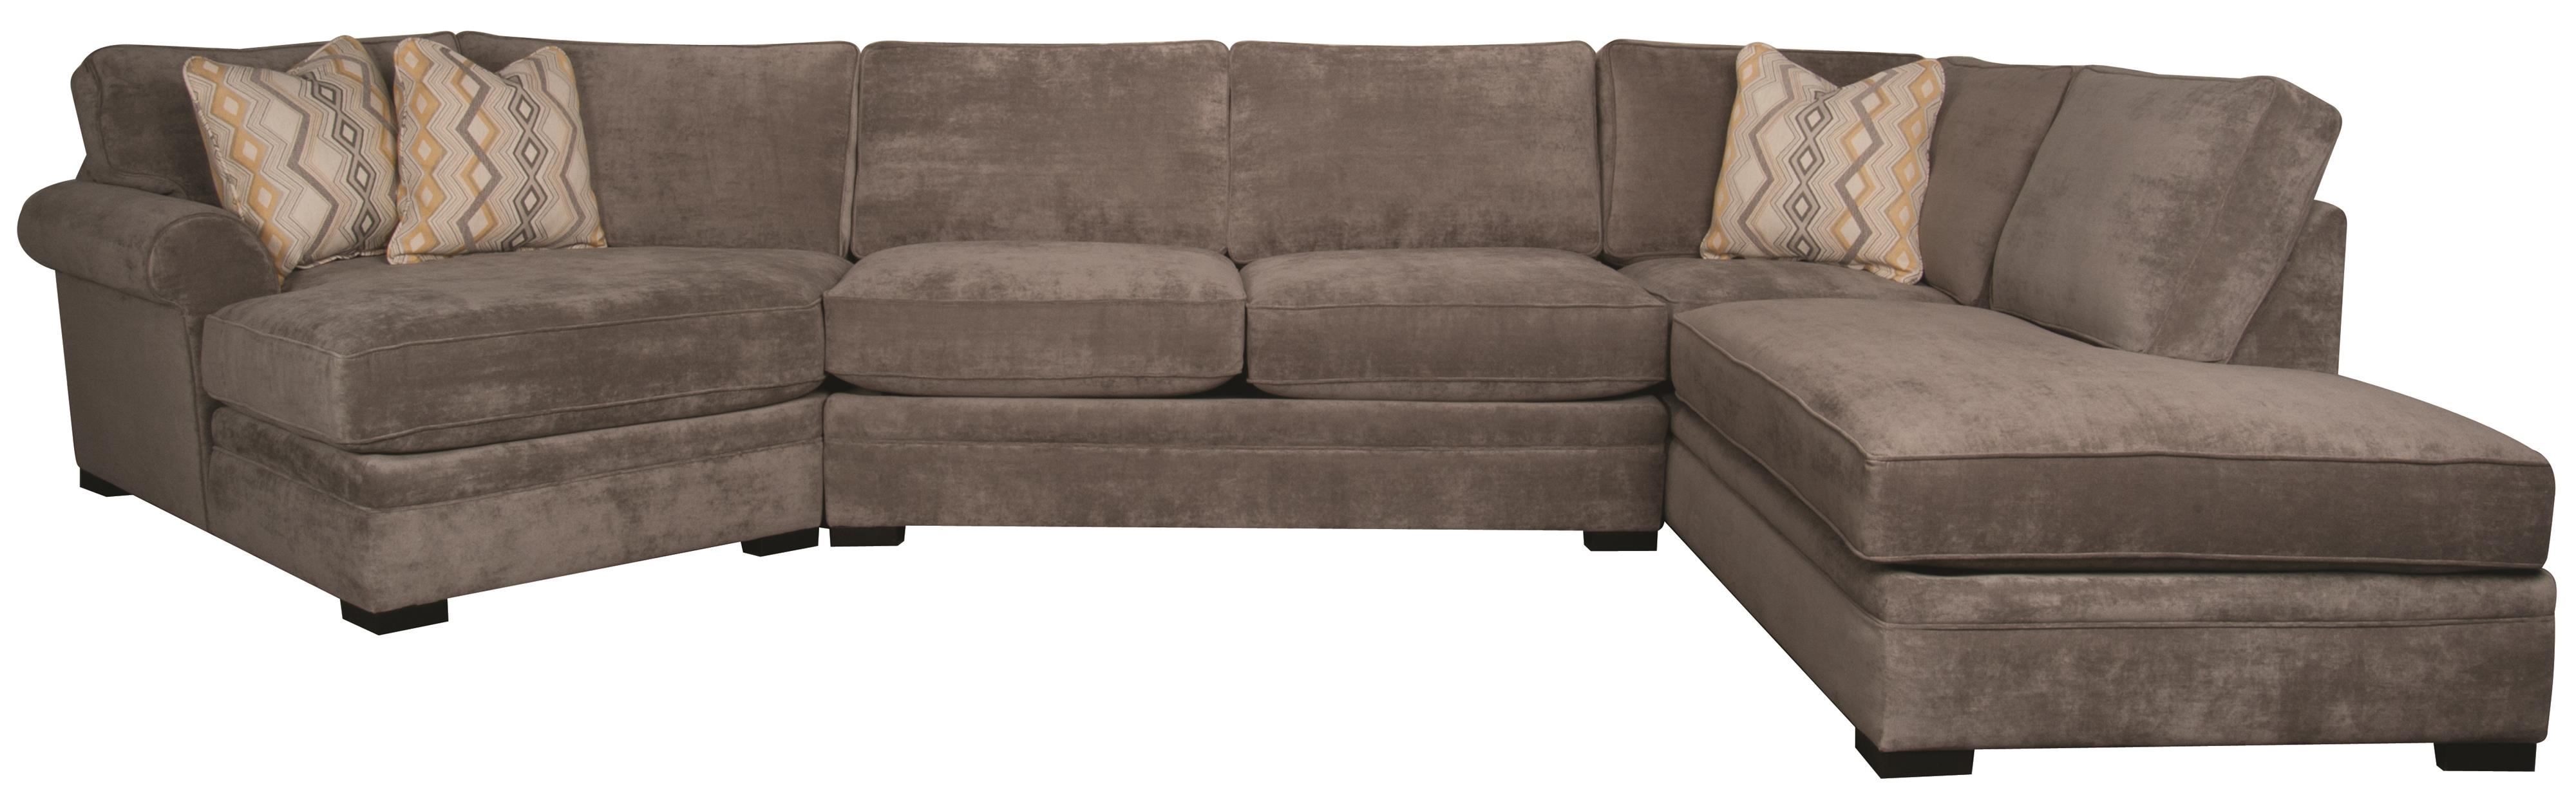 with pin w couch patola corner sectional ideas park chaise piece raf cuddler